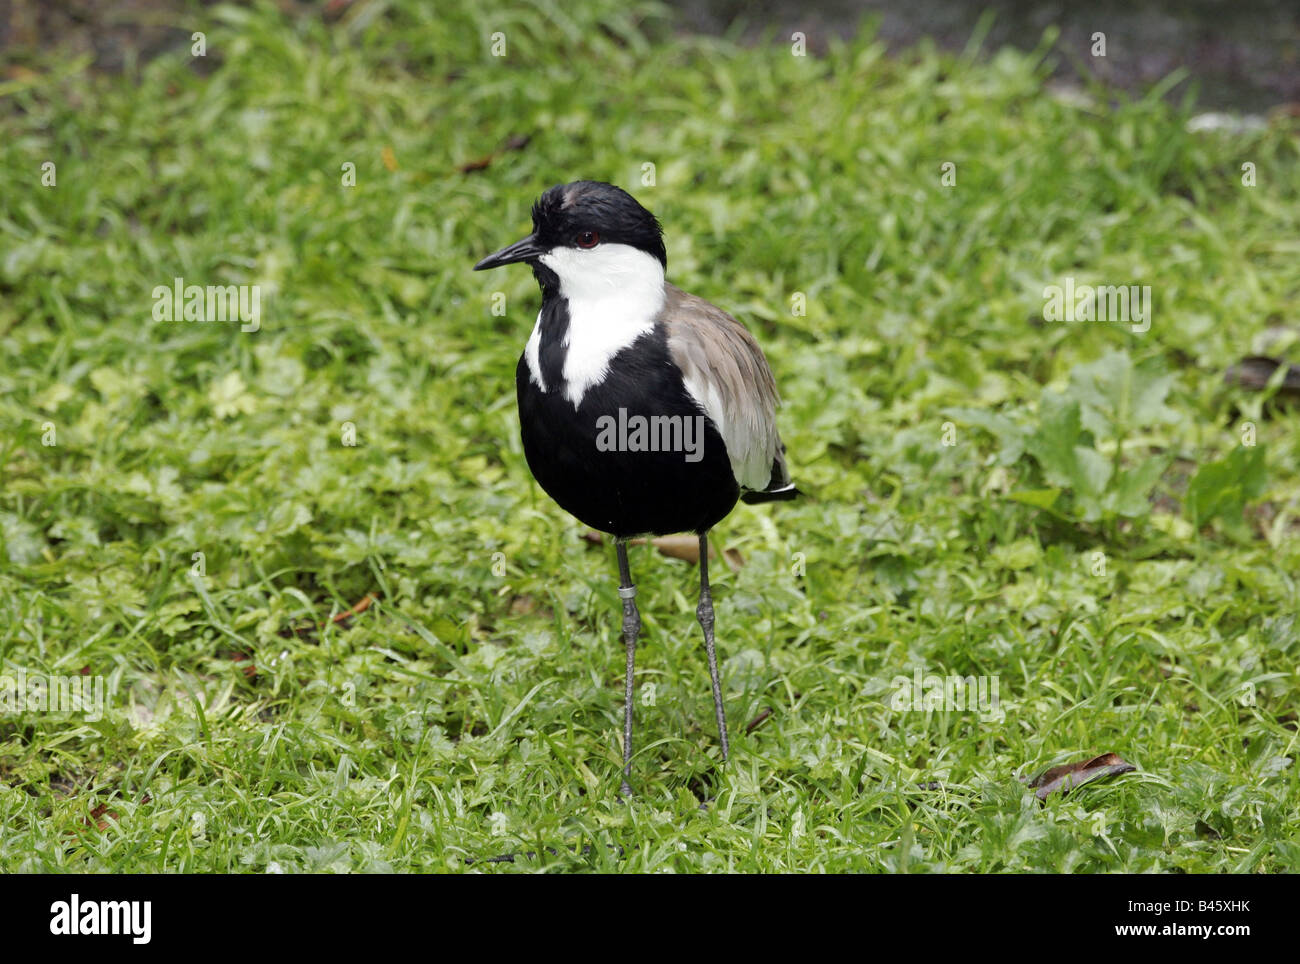 zoology / animals, avian / birds, Spur-winged Plover (Vanellus spinosus), standing in grass, distribution: Europe, - Stock Image